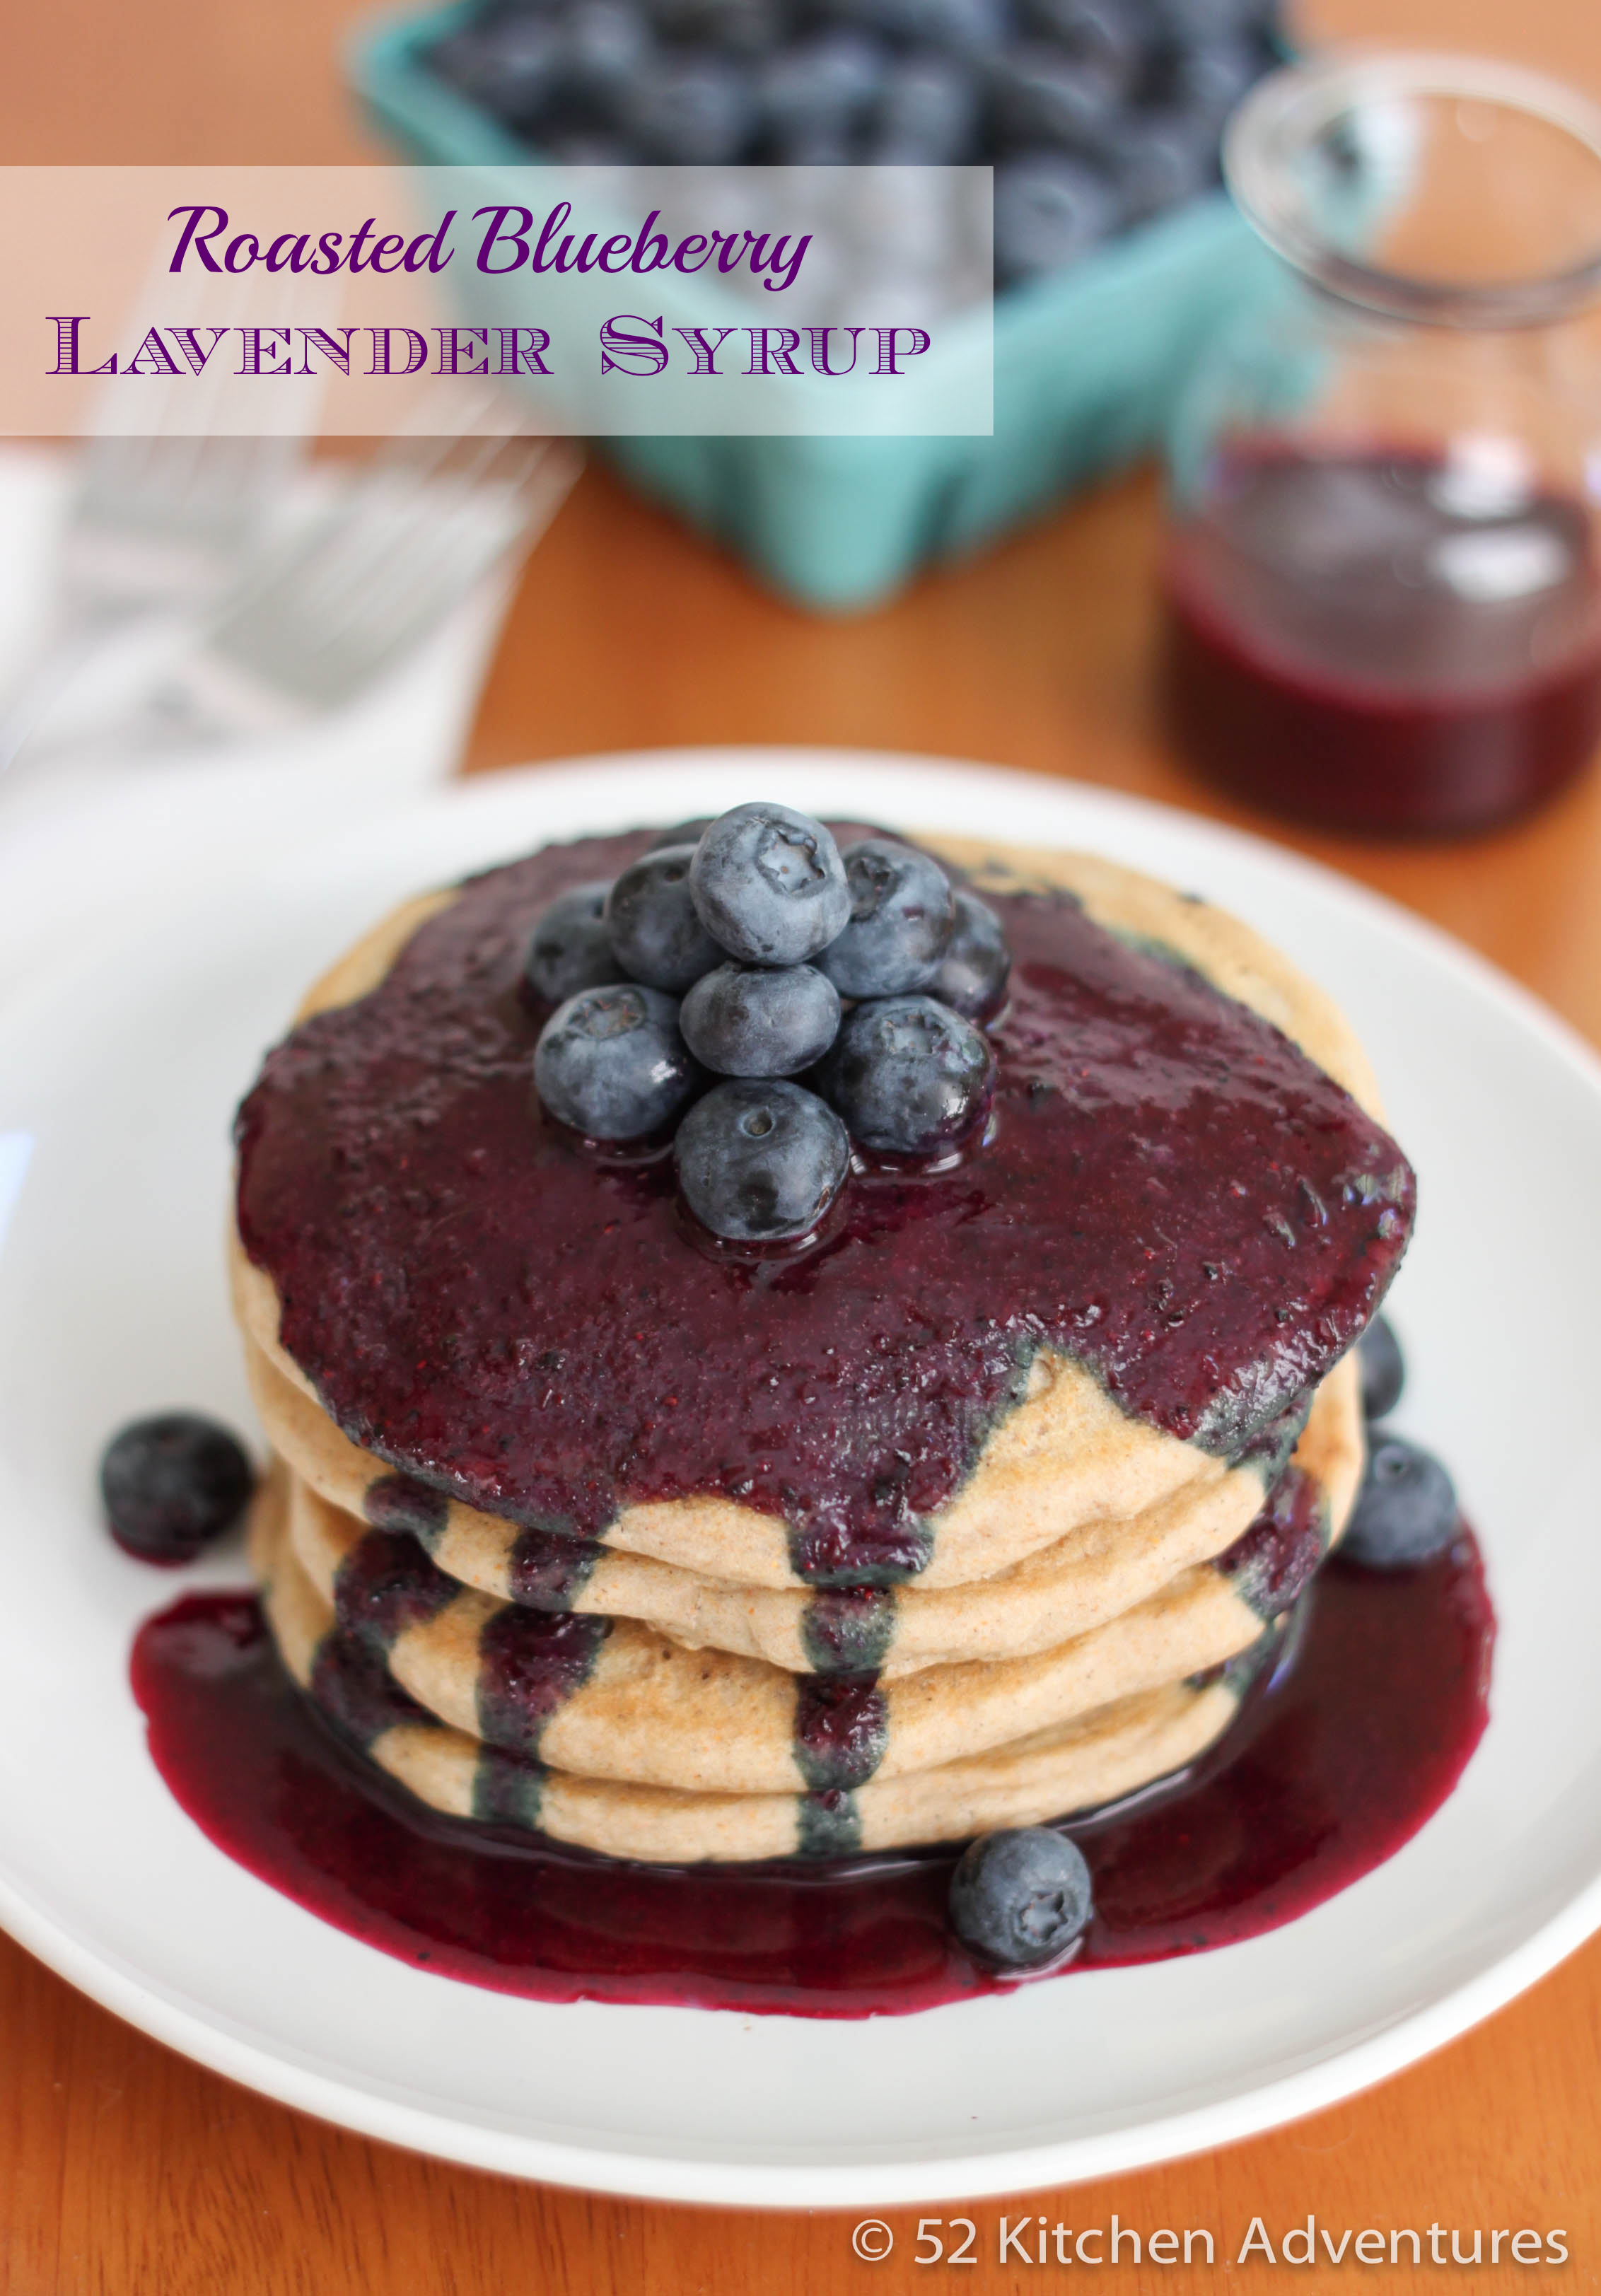 Roasted Blueberry Lavender Syrup